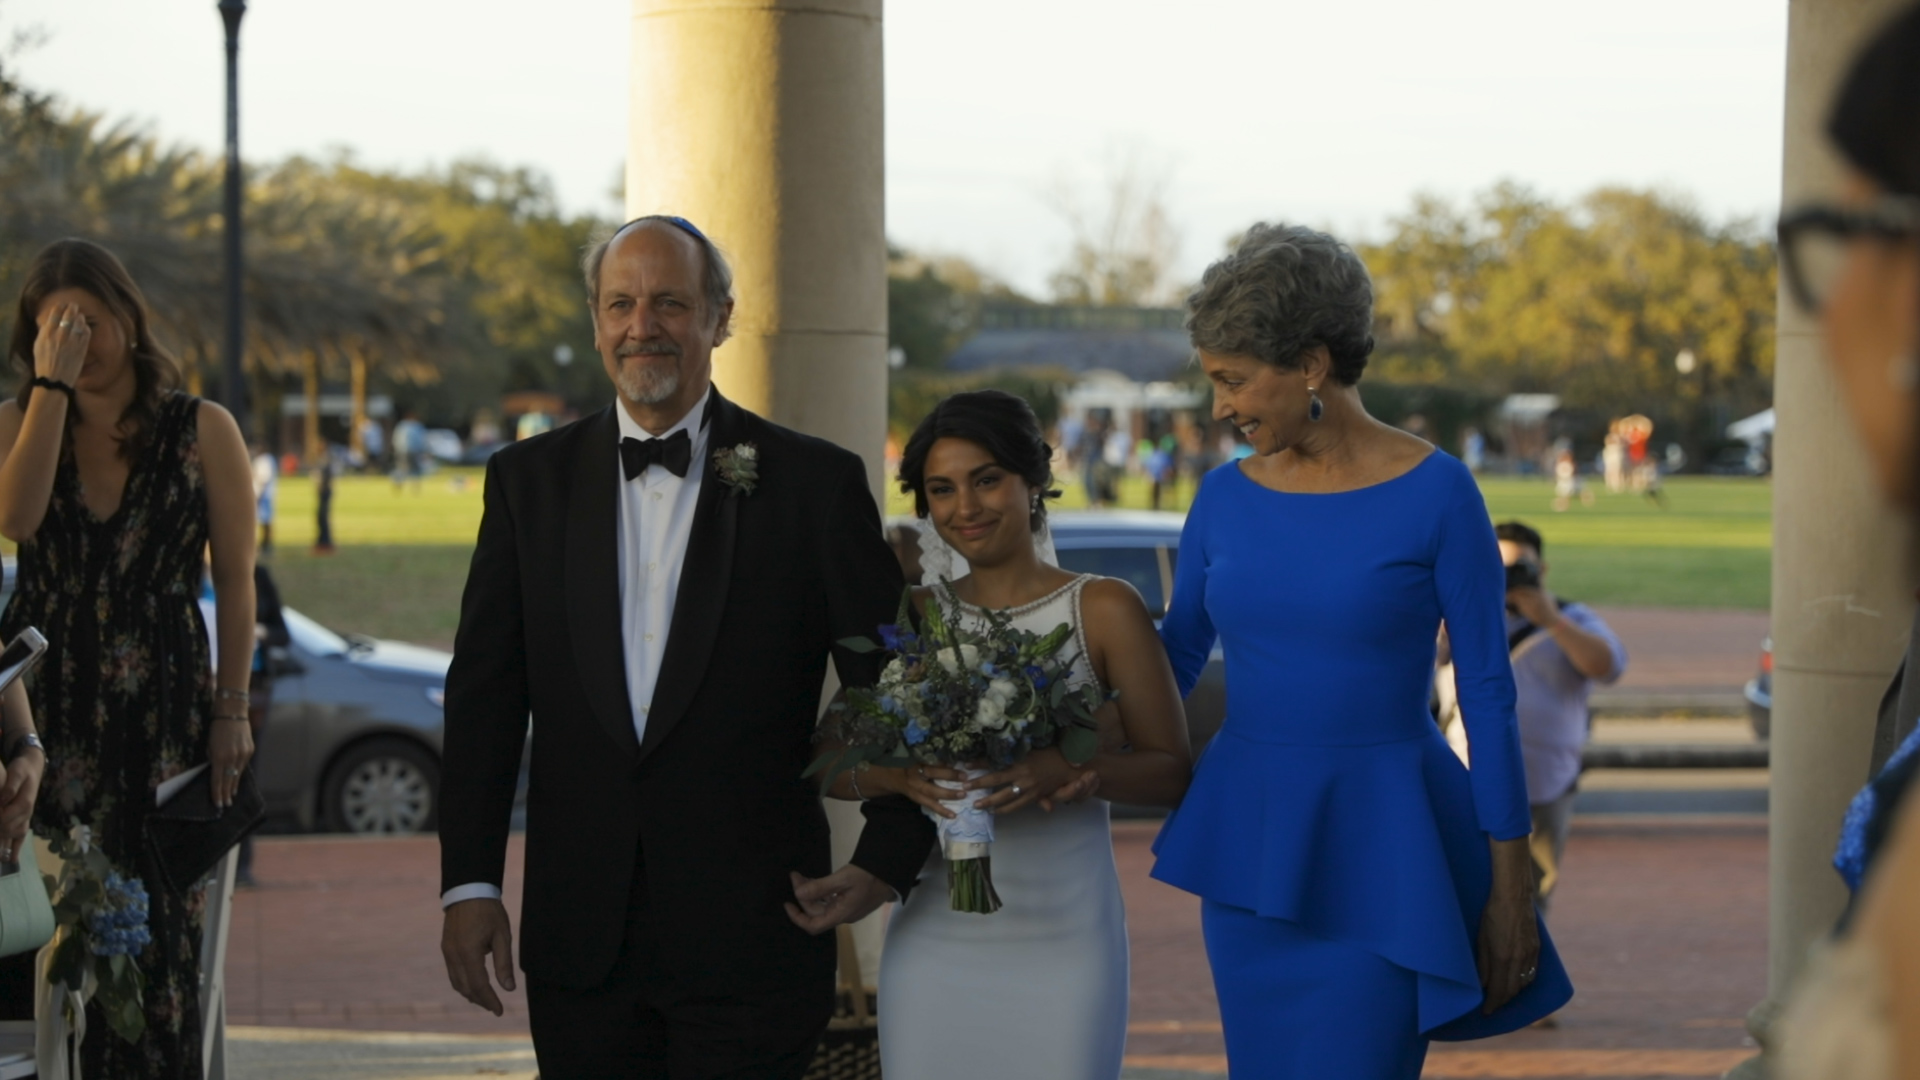 Anya and Max_New Orleans Wedding Video_Bride Film_Peristyle City Park_Bride walking down aisle